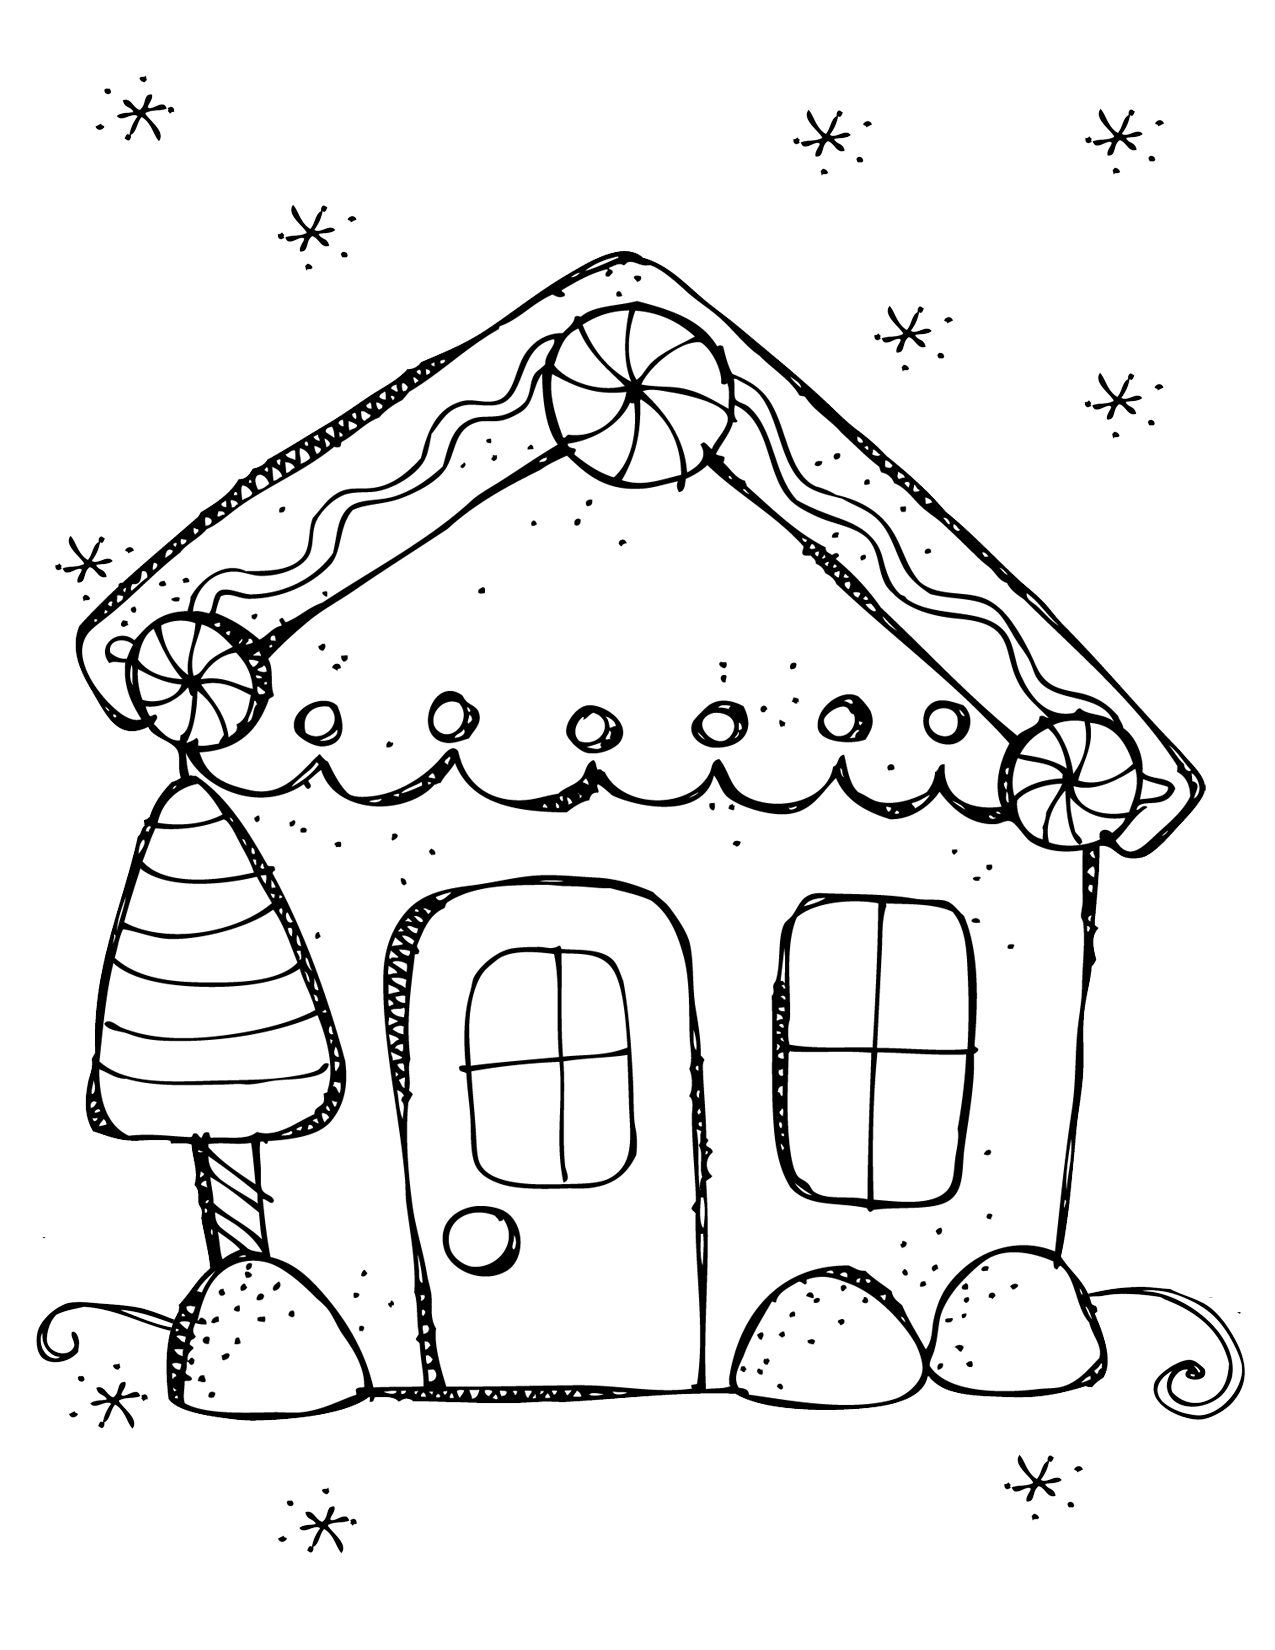 Printable Gingerbread House Coloring Pages At Getcolorings